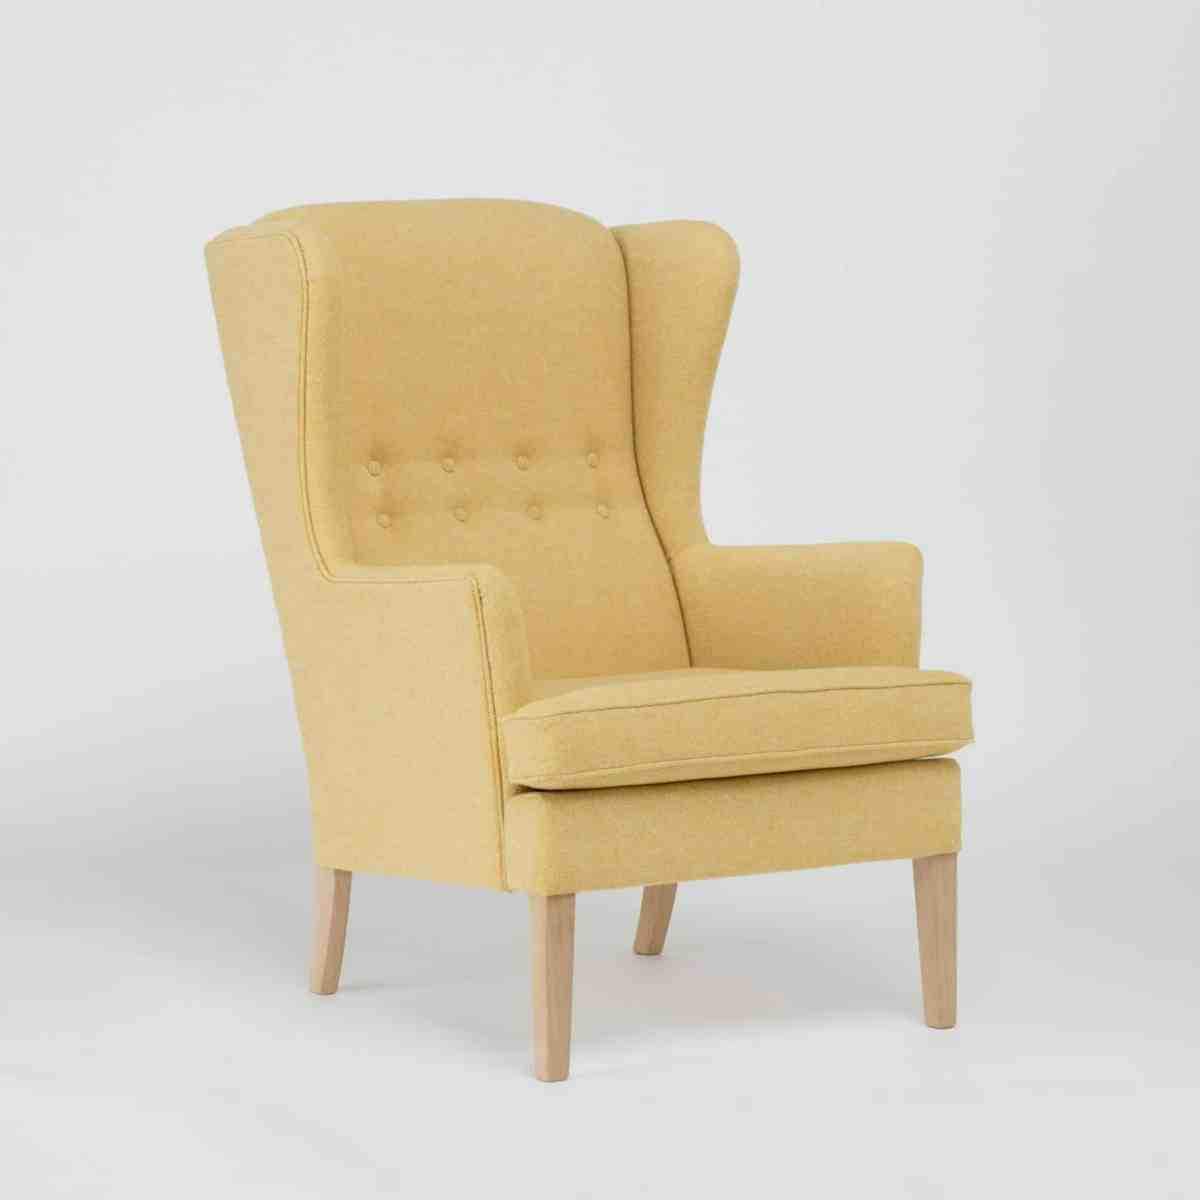 soren-lund-winged-armchair-125-another-country-003